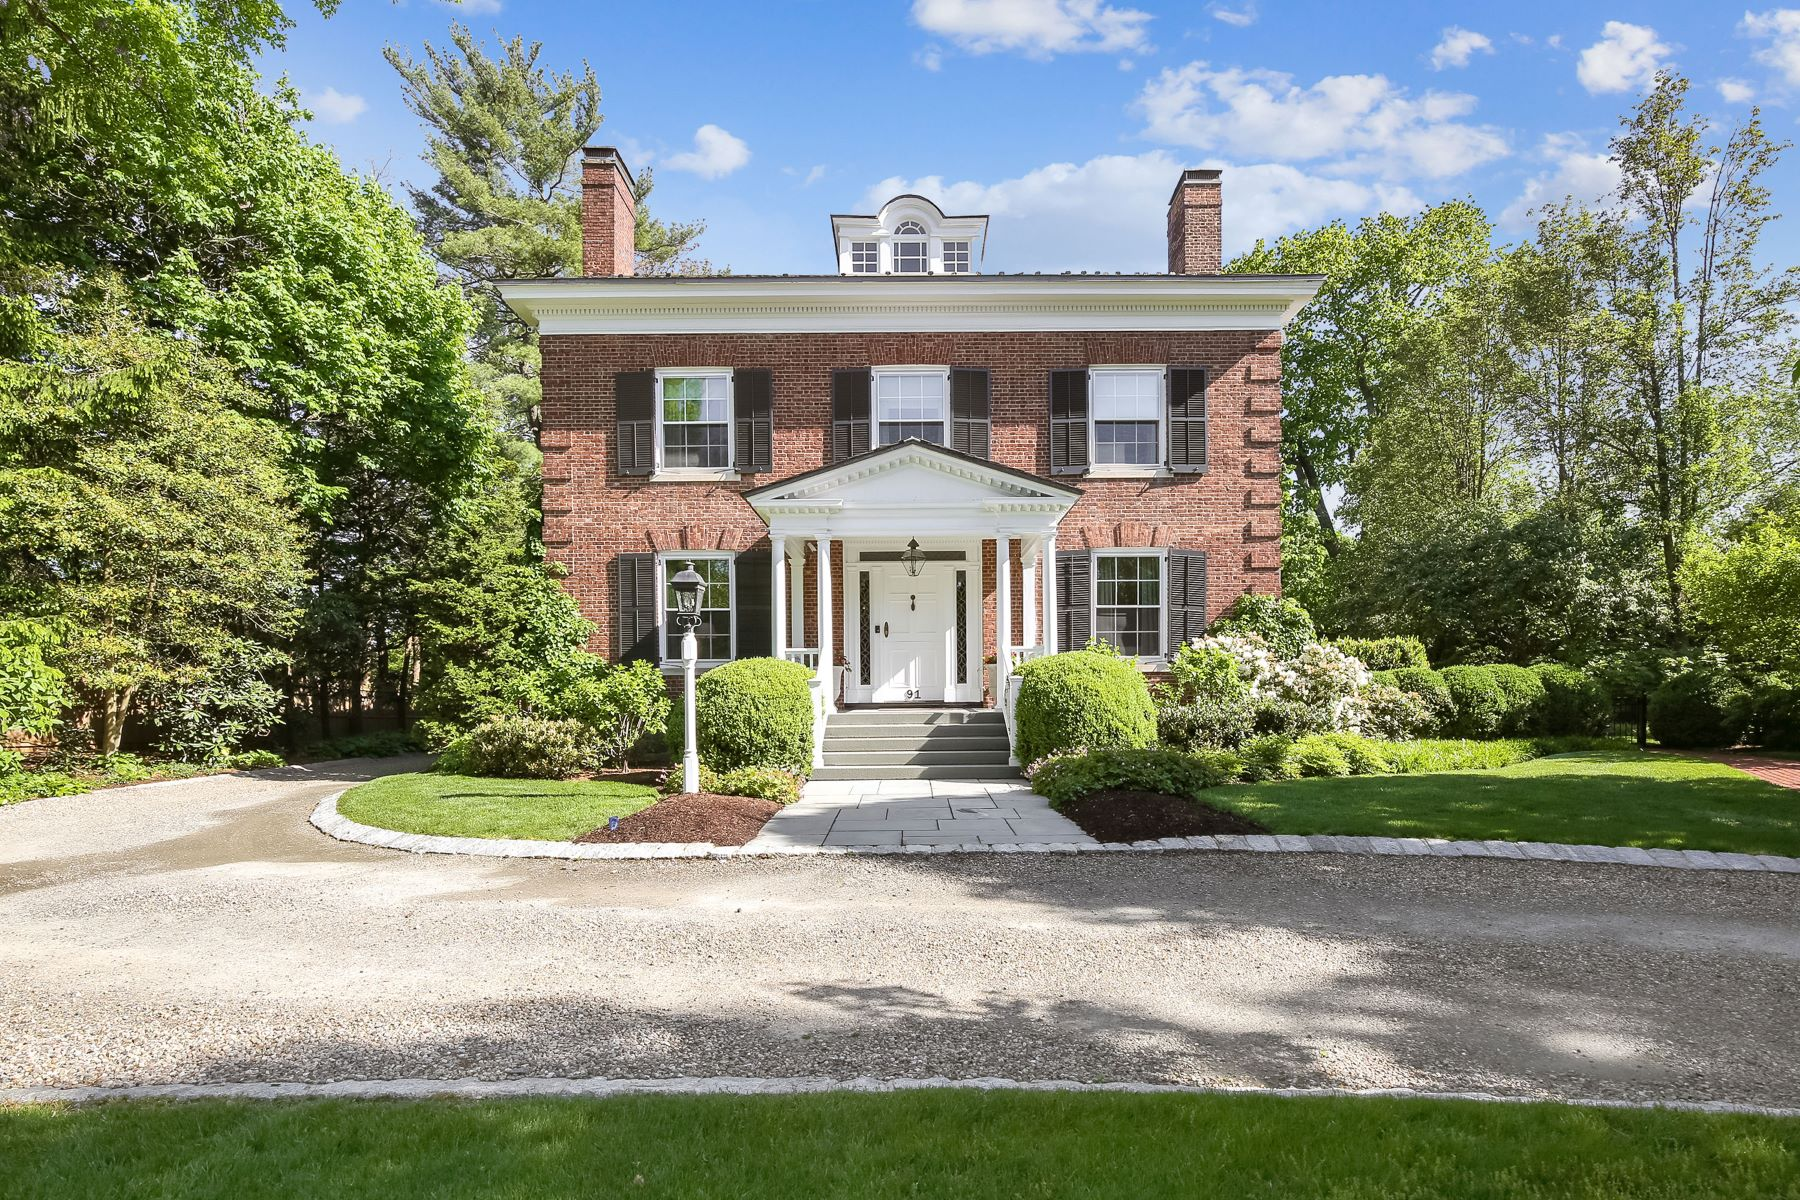 Single Family Homes for Sale at Georgian Revival 91 Prospect Street, Summit, New Jersey 07901 United States